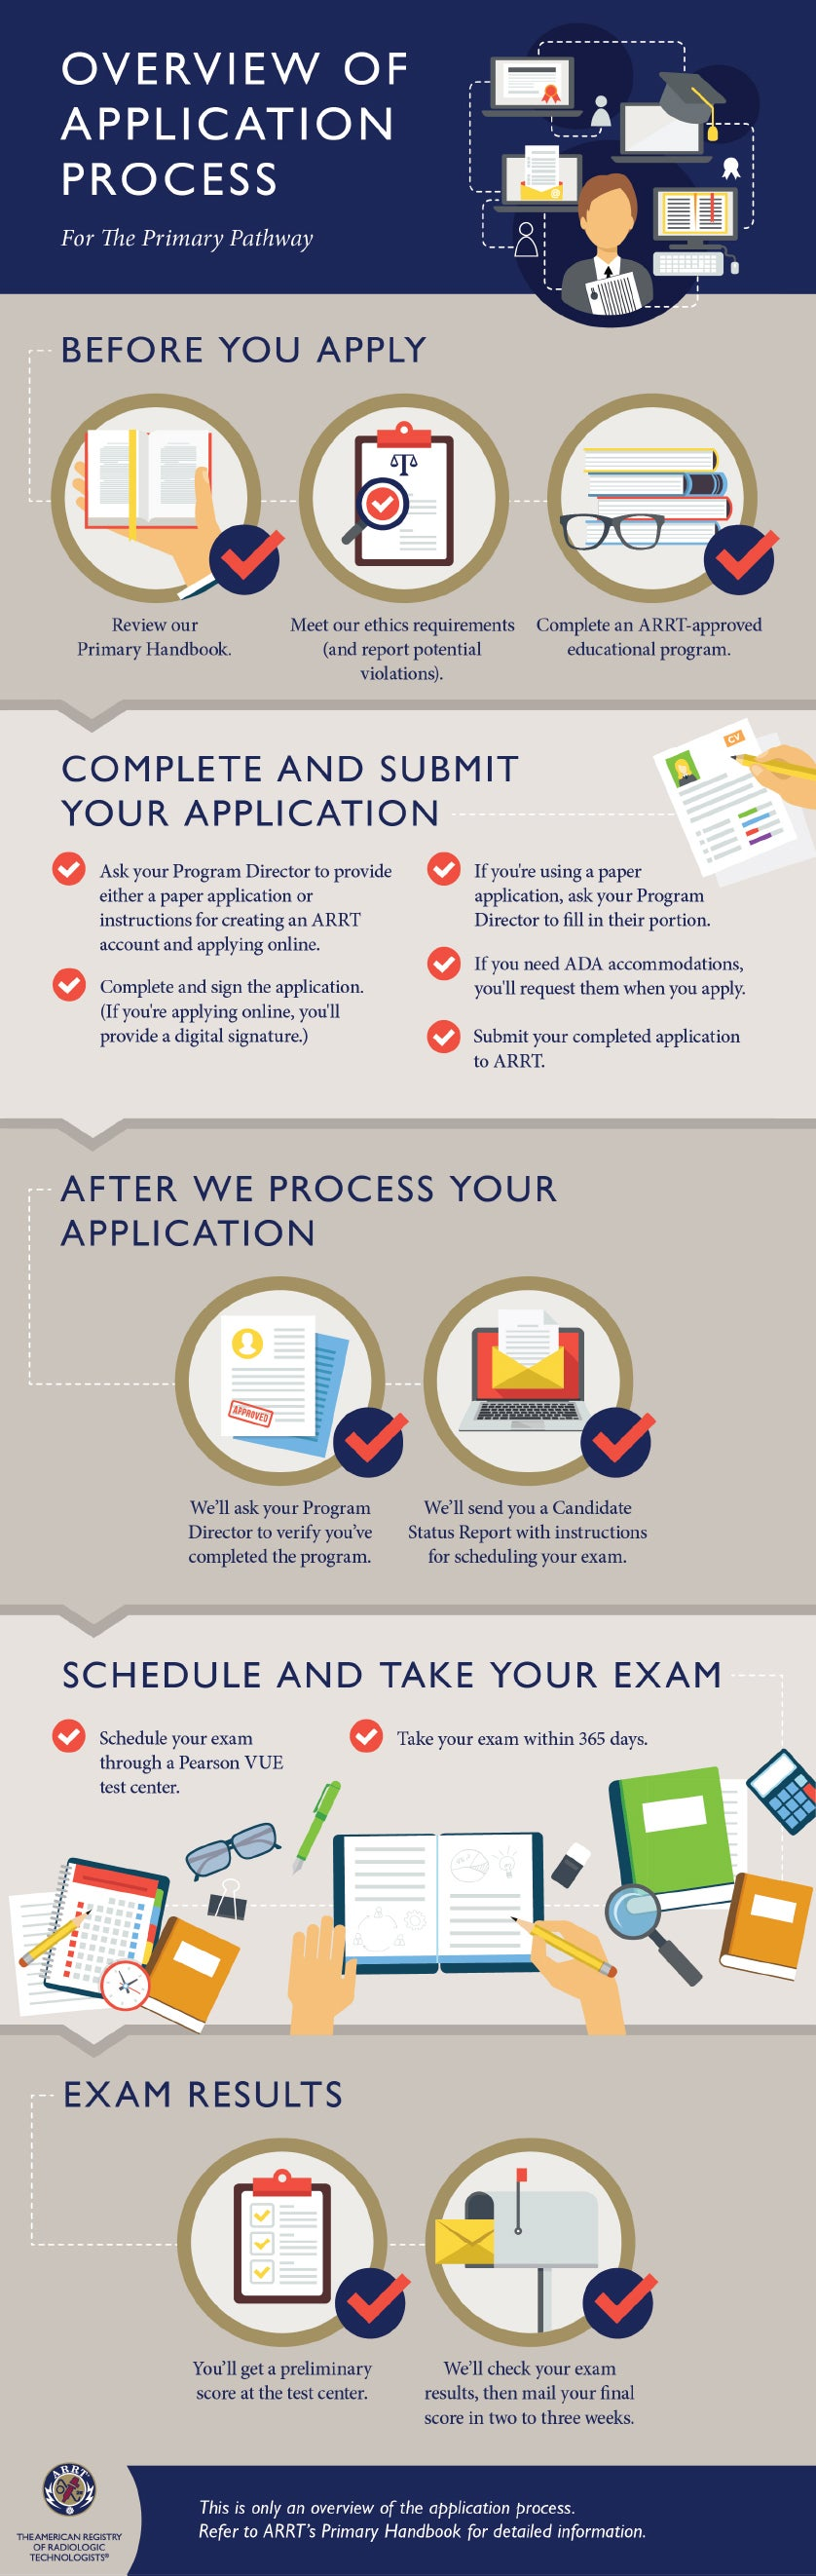 Overview of the application process